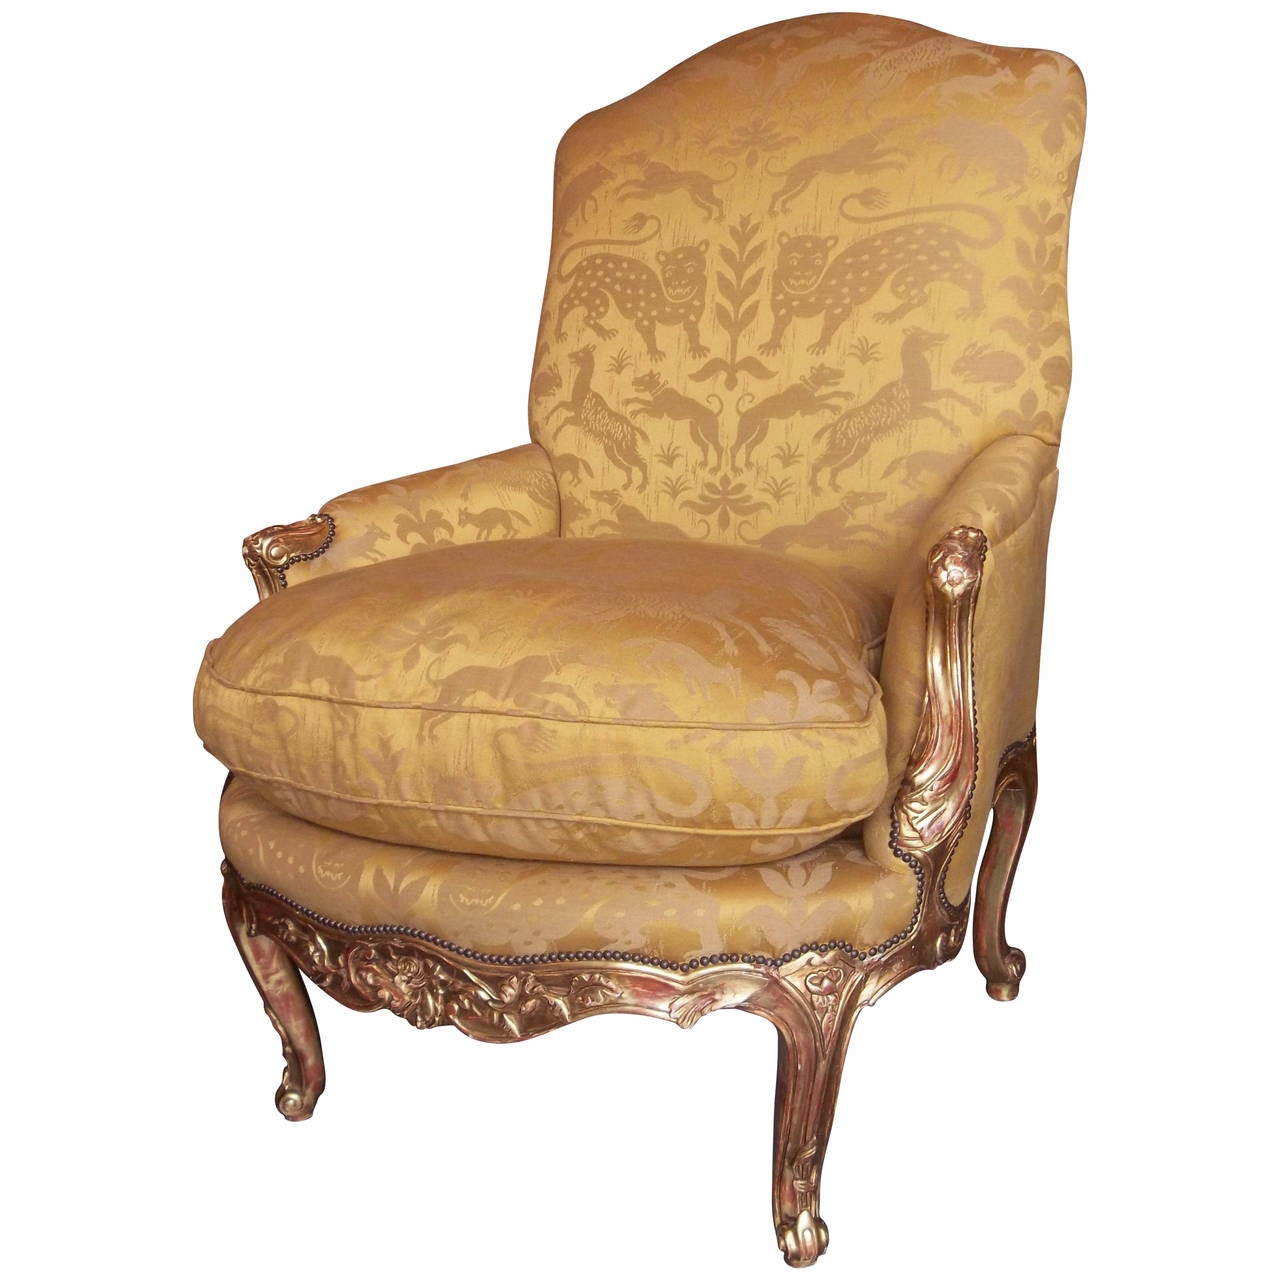 Louis XV Styled Giltwood Bergere or Armchair